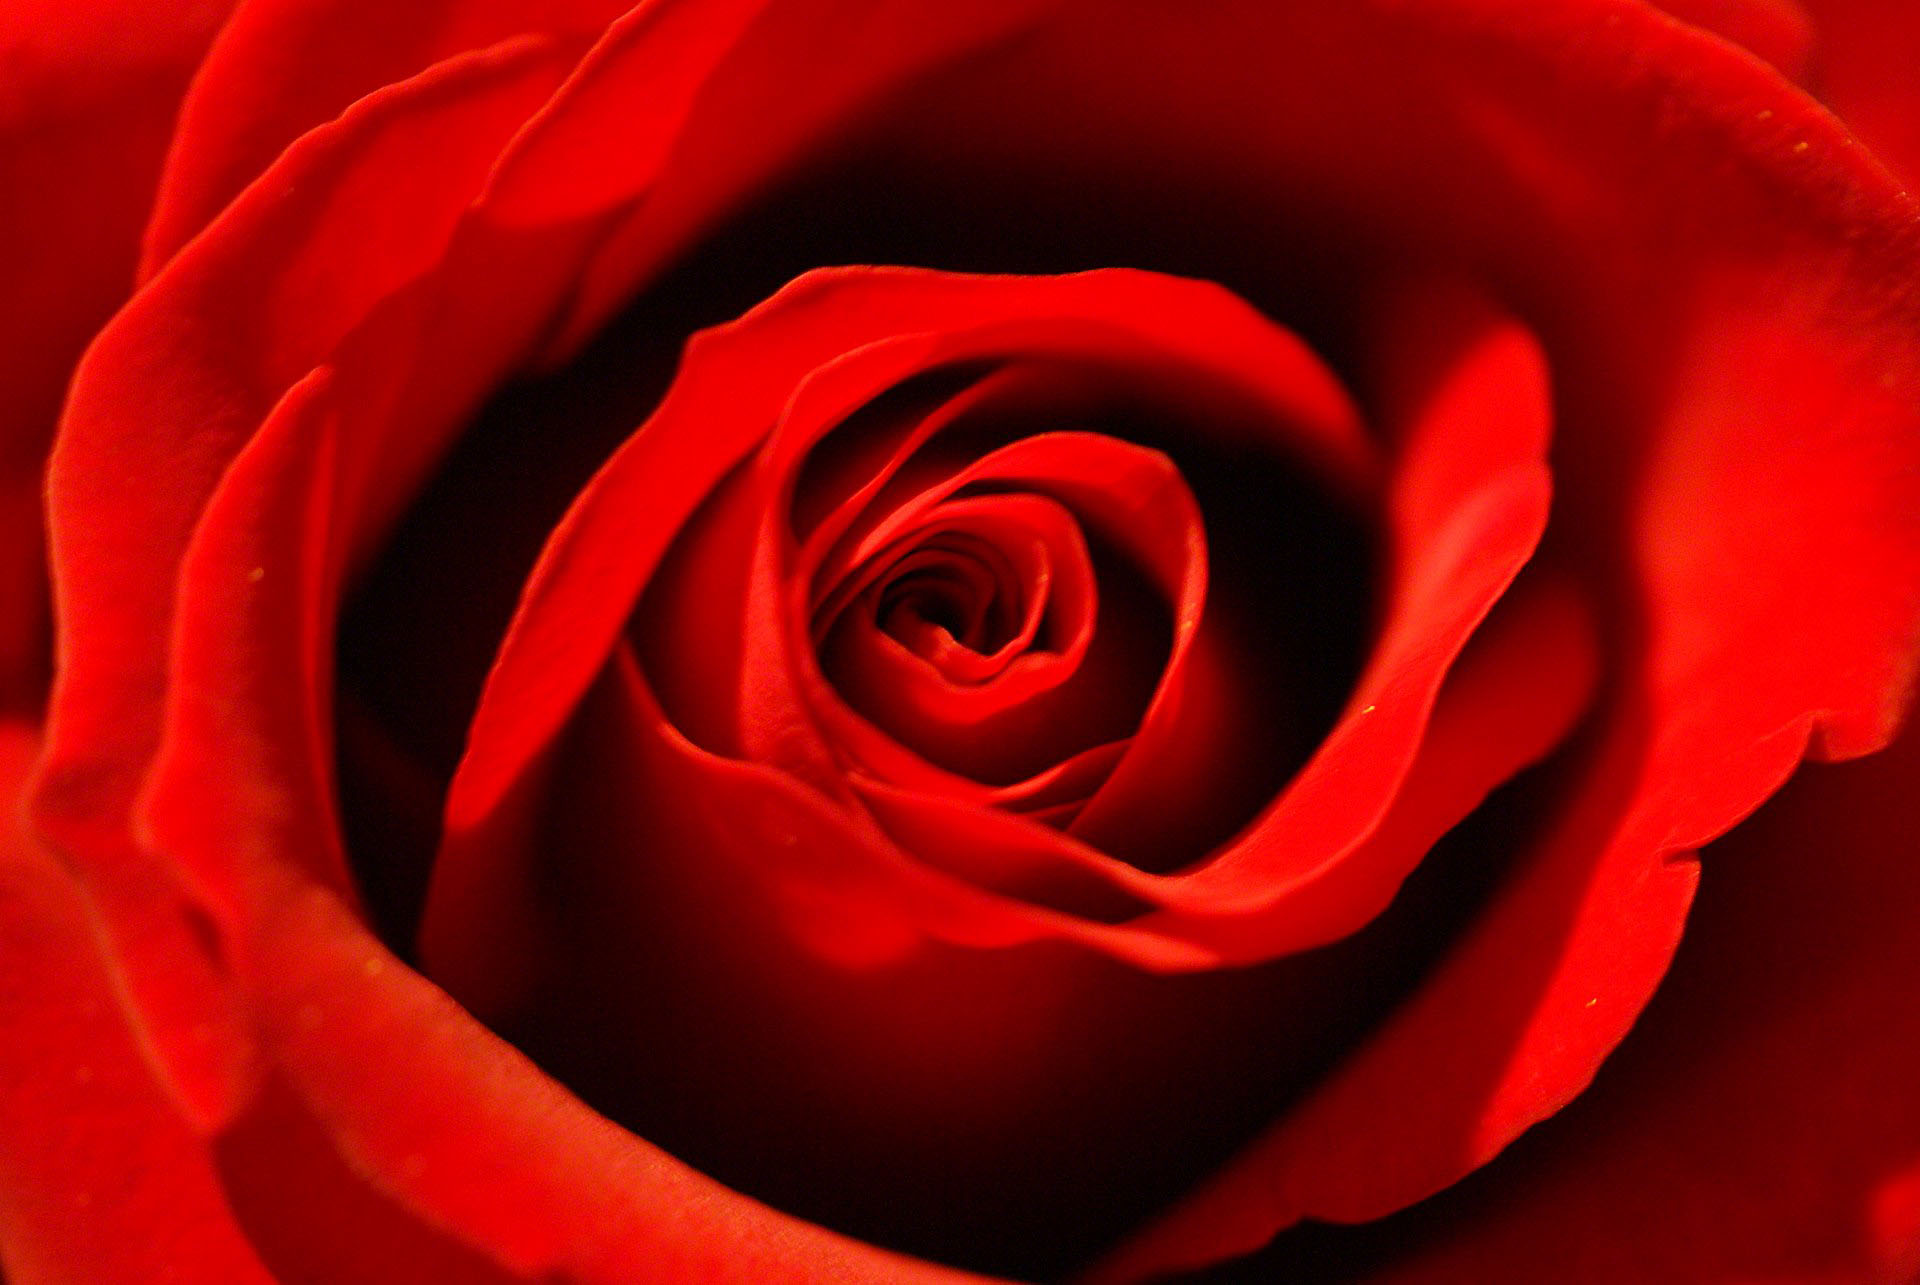 Red Rose Wallpaper